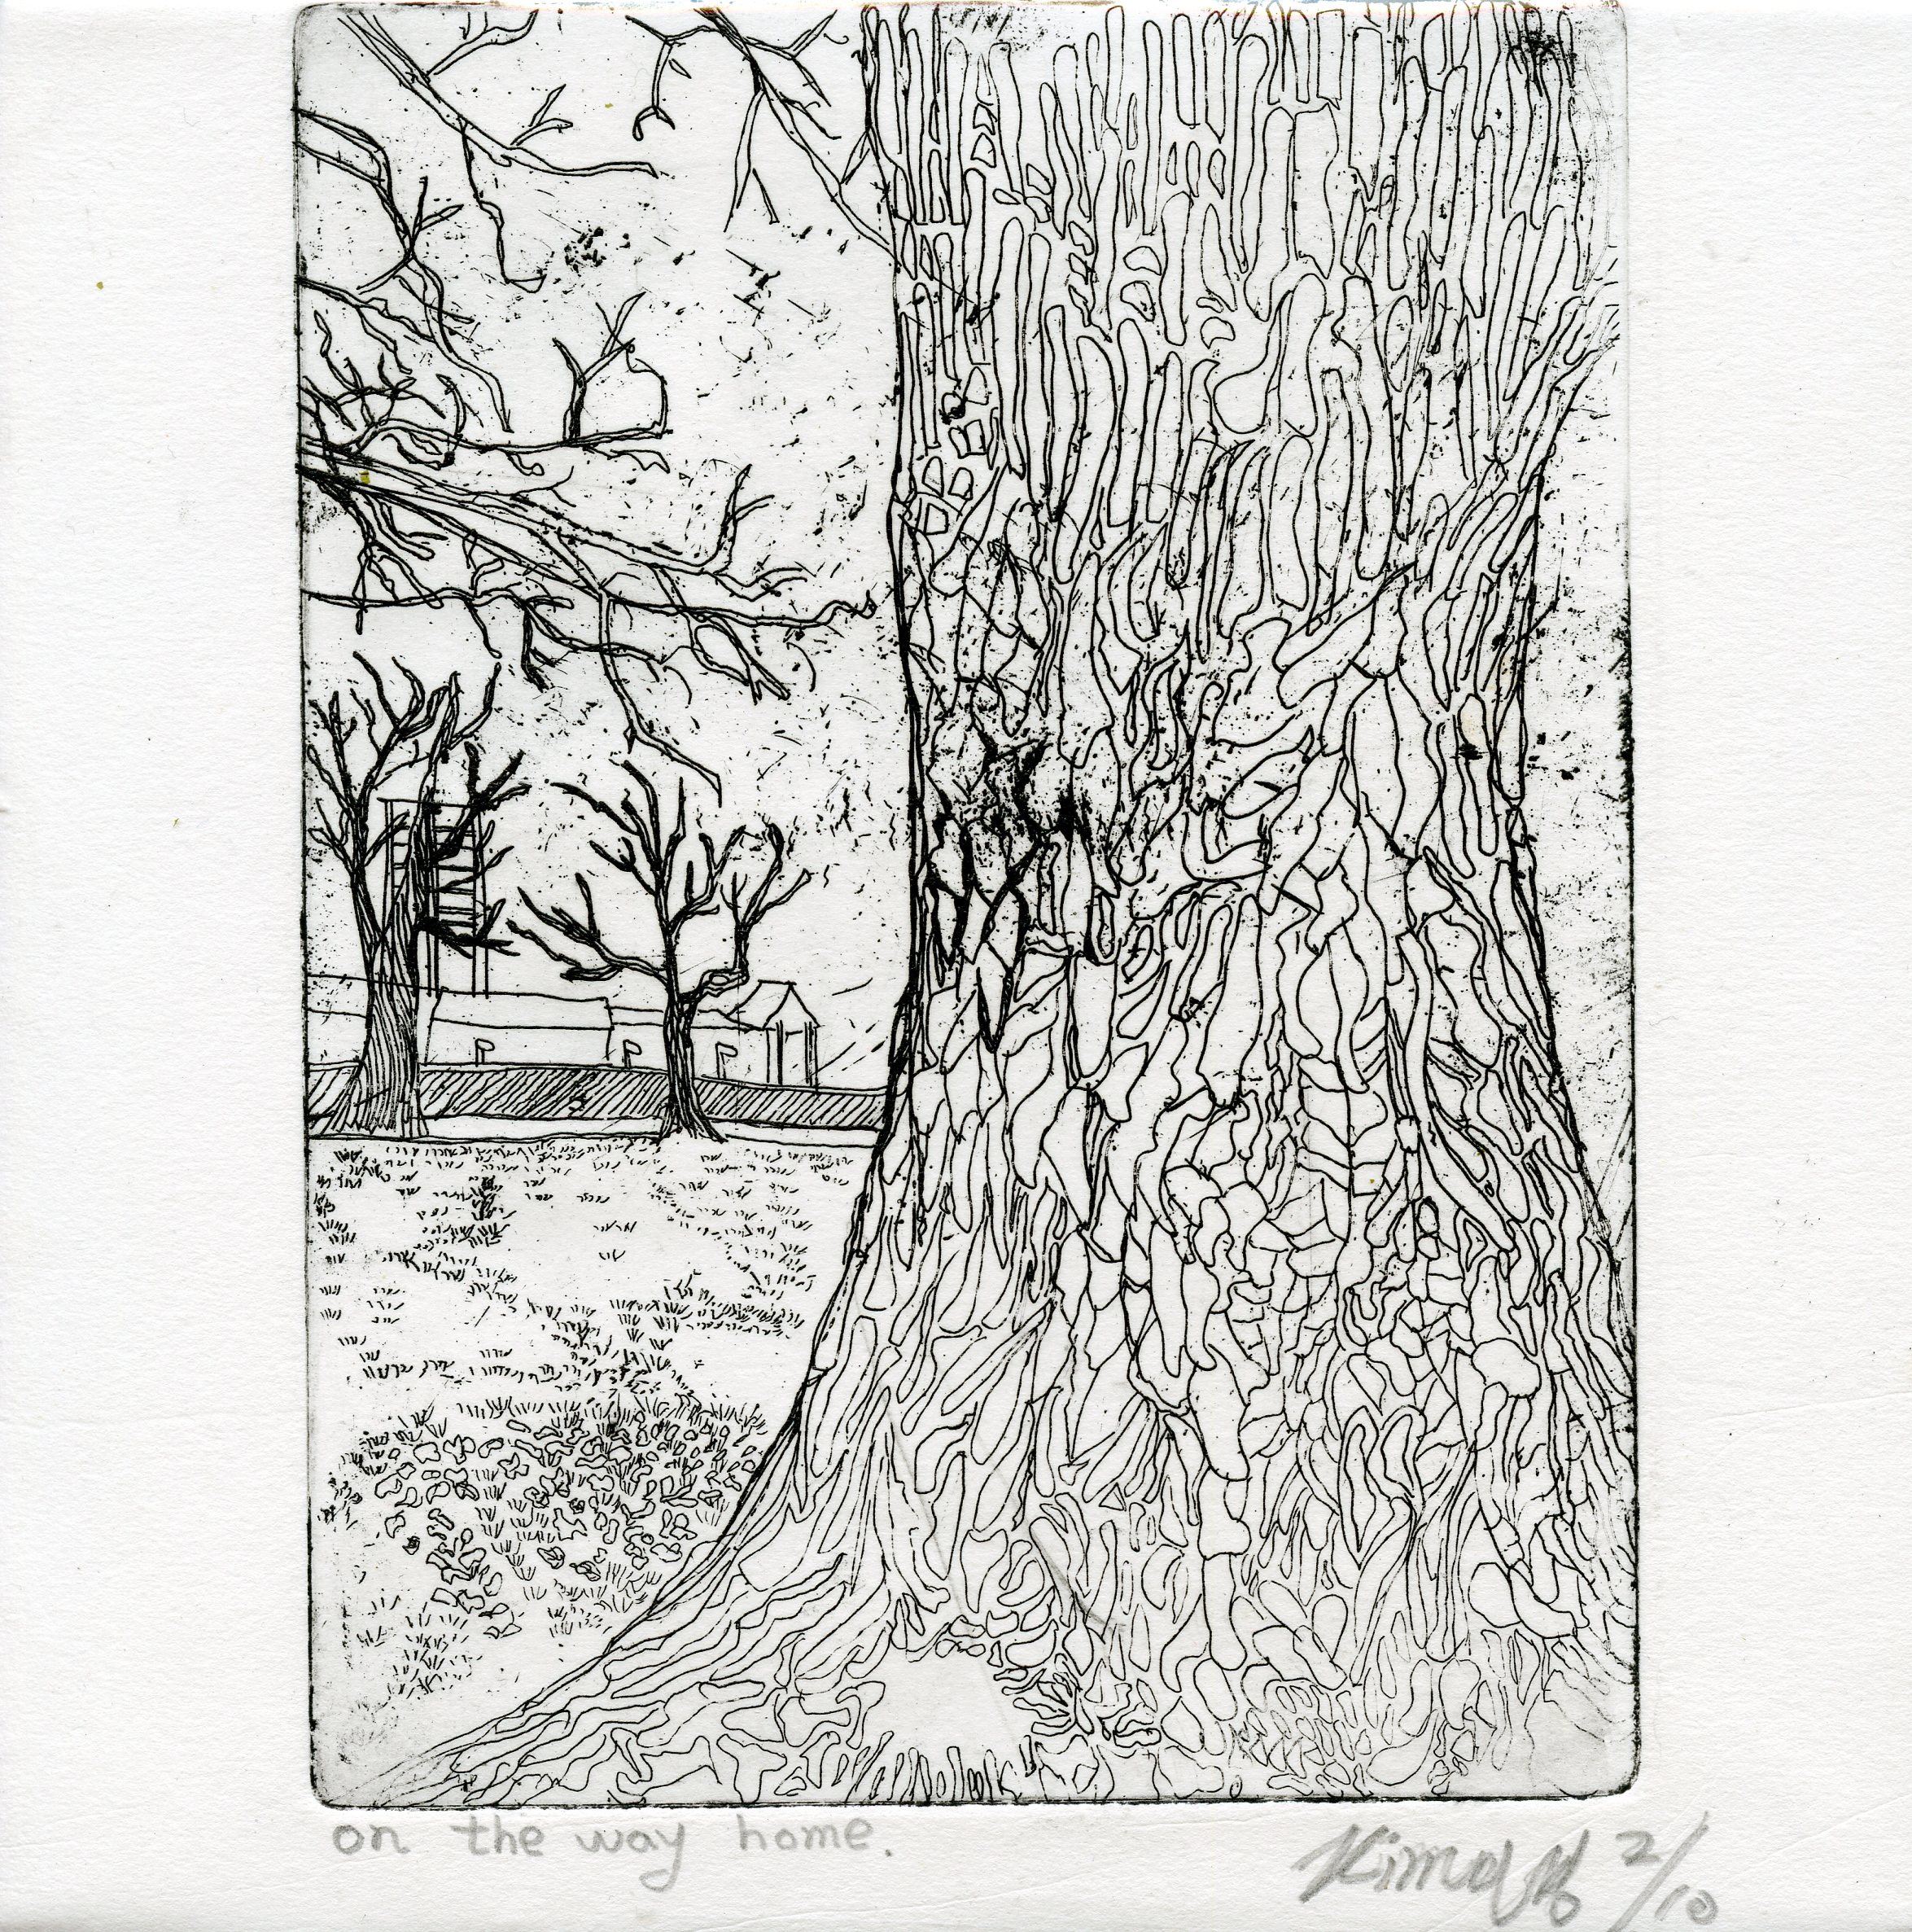 Min Kyung, Kim: On the Way Home etching